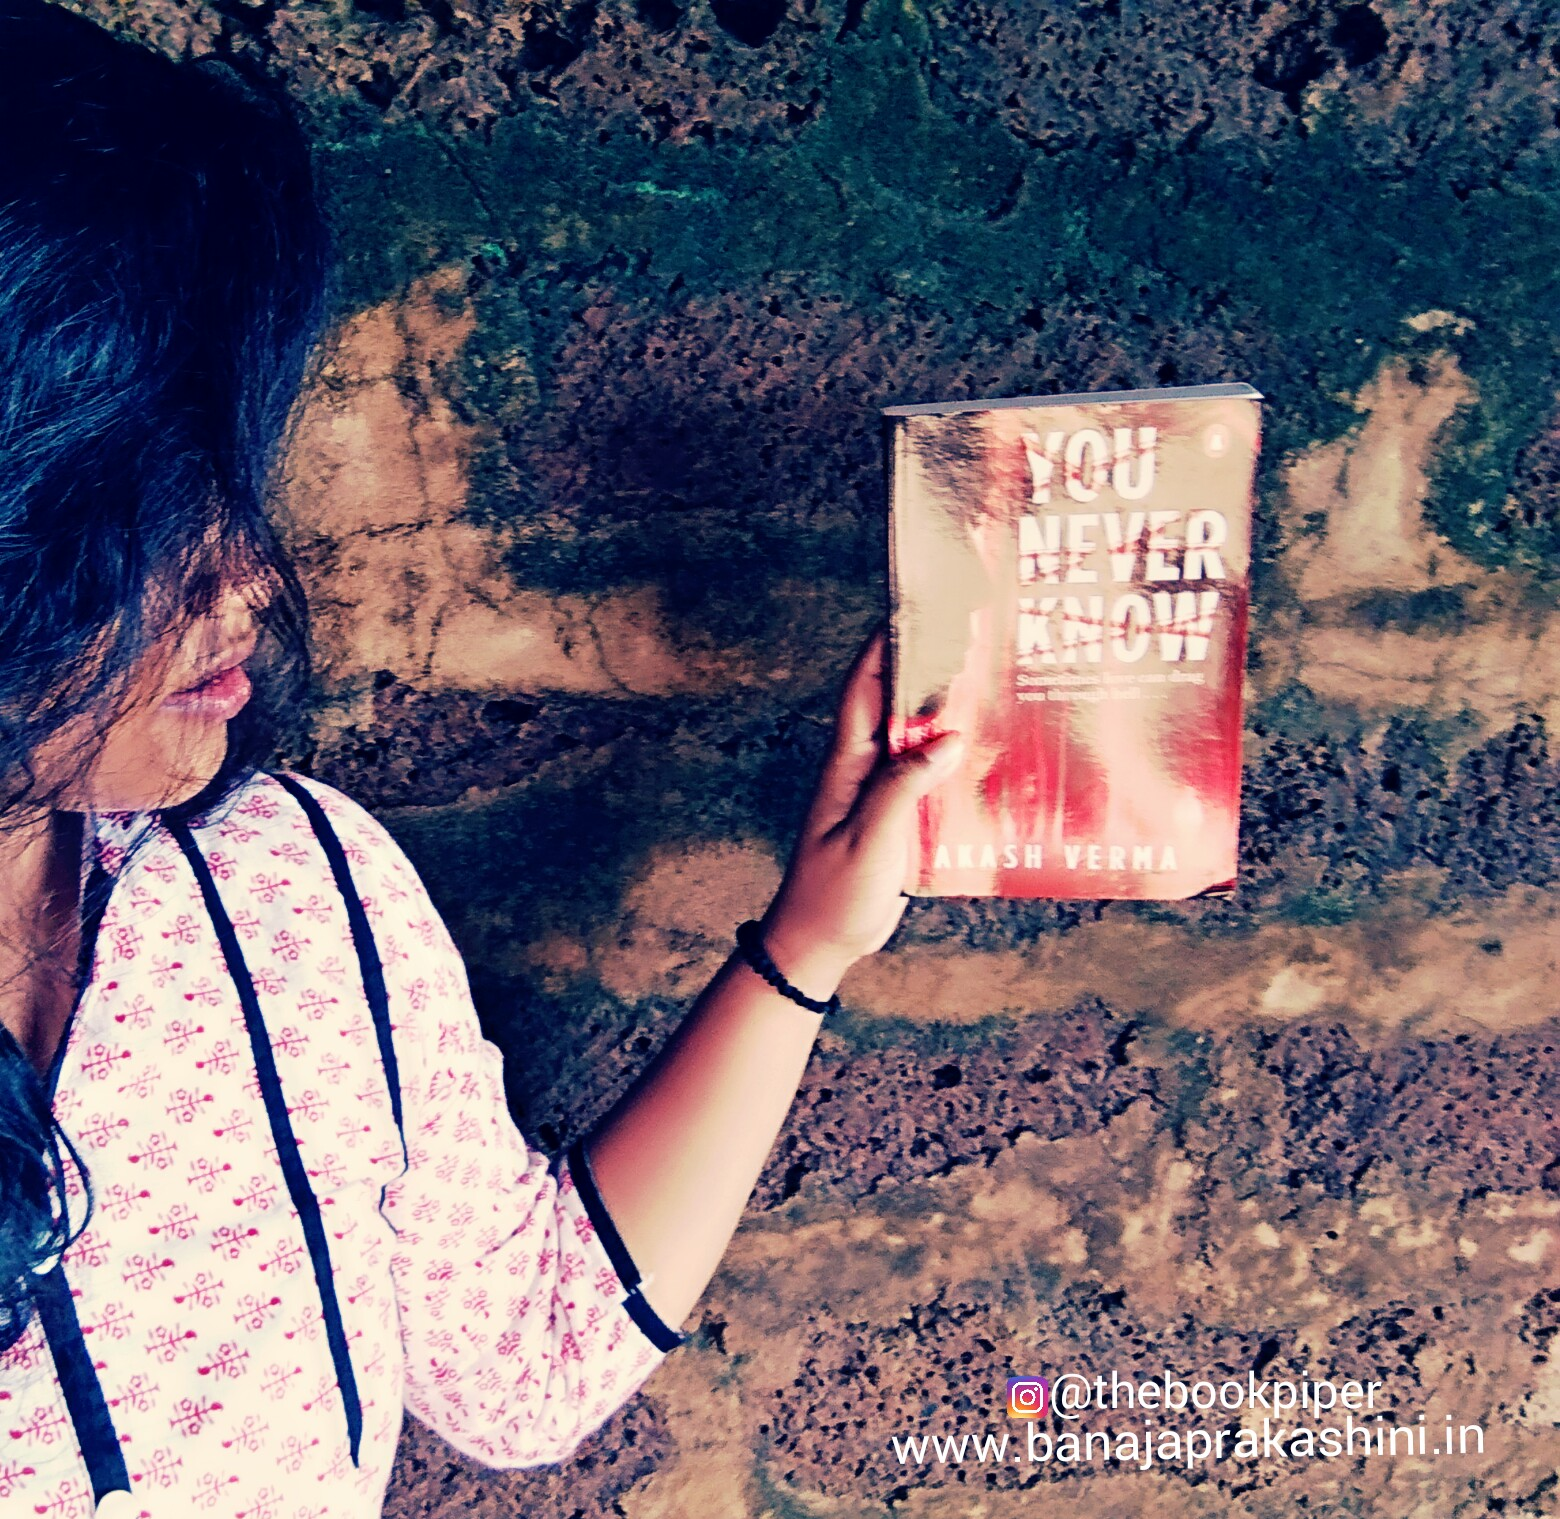 Review Pen: You Never Know by Akash Verma